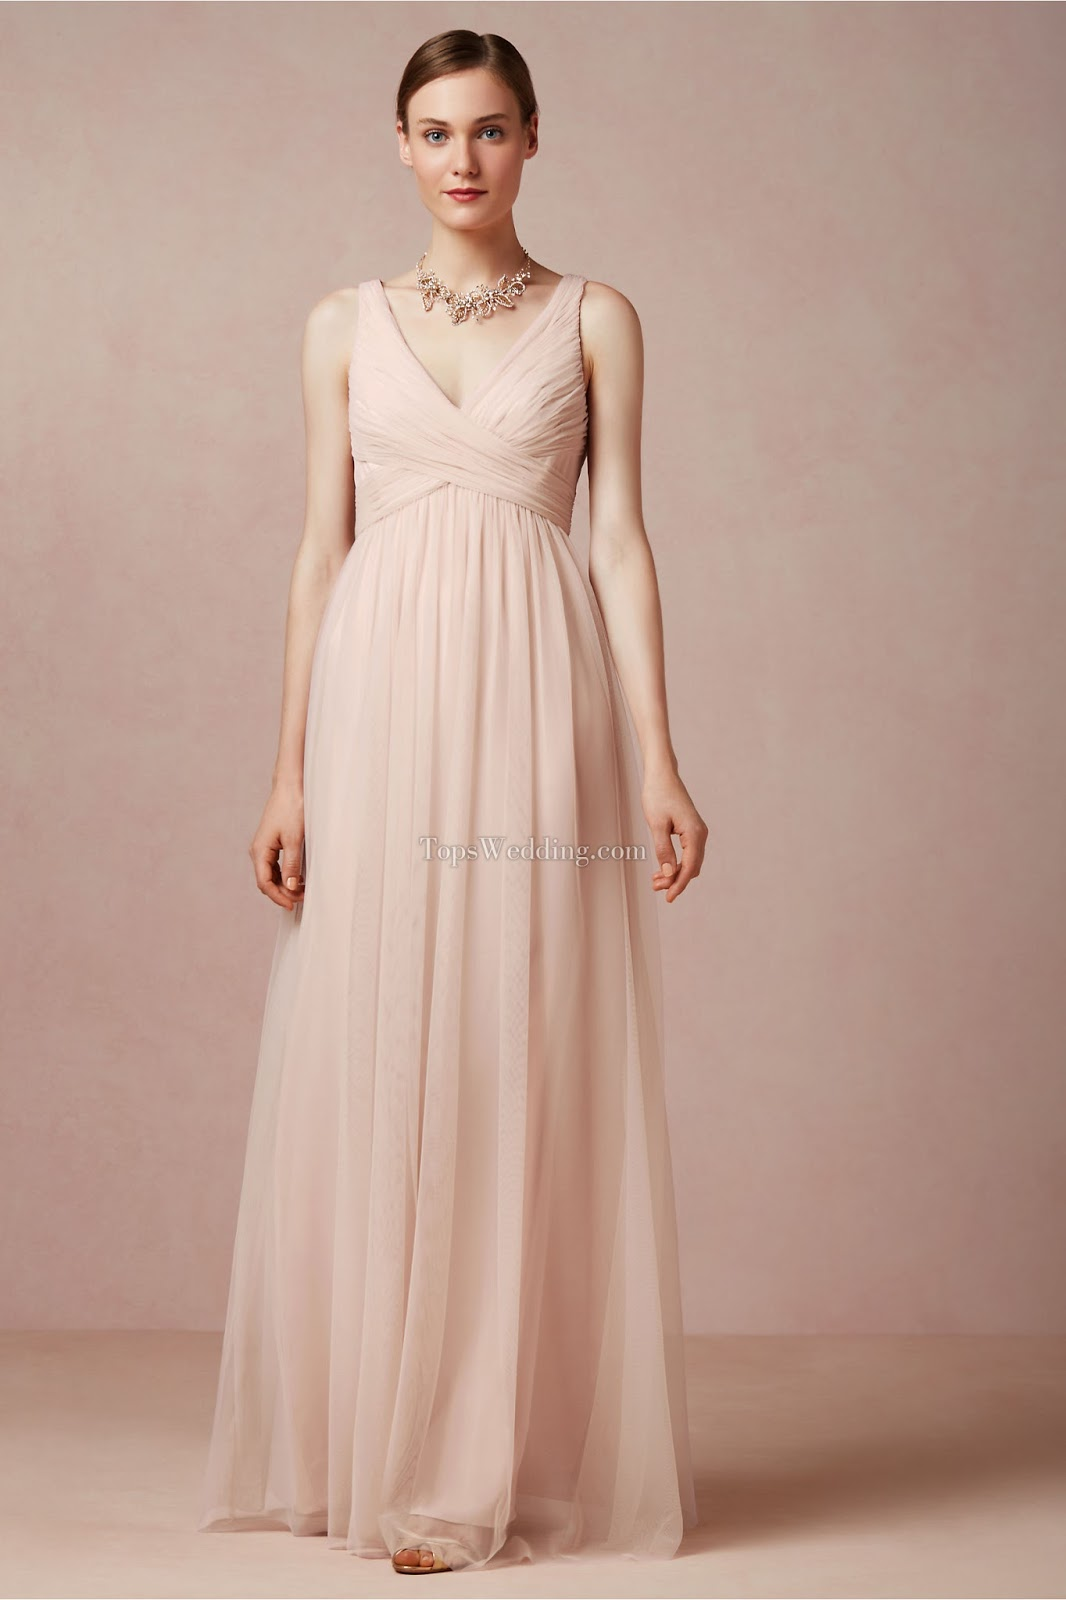 Where To Buy Dress For Wedding 47 Awesome You can pick your